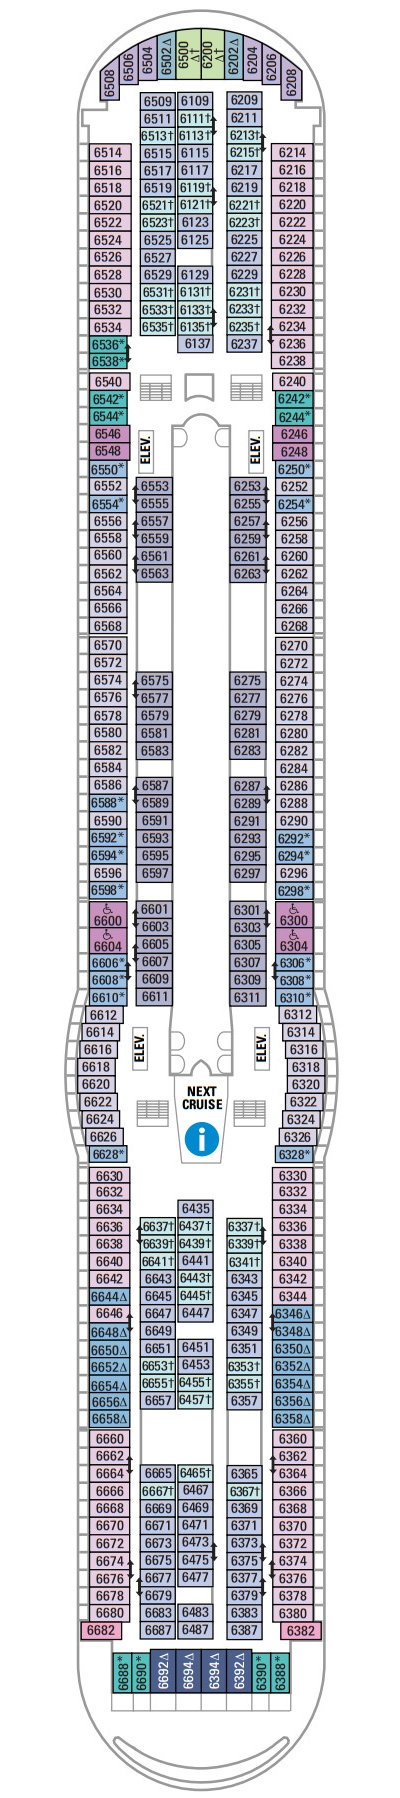 Voyager Of The Seas Deck 6 layout